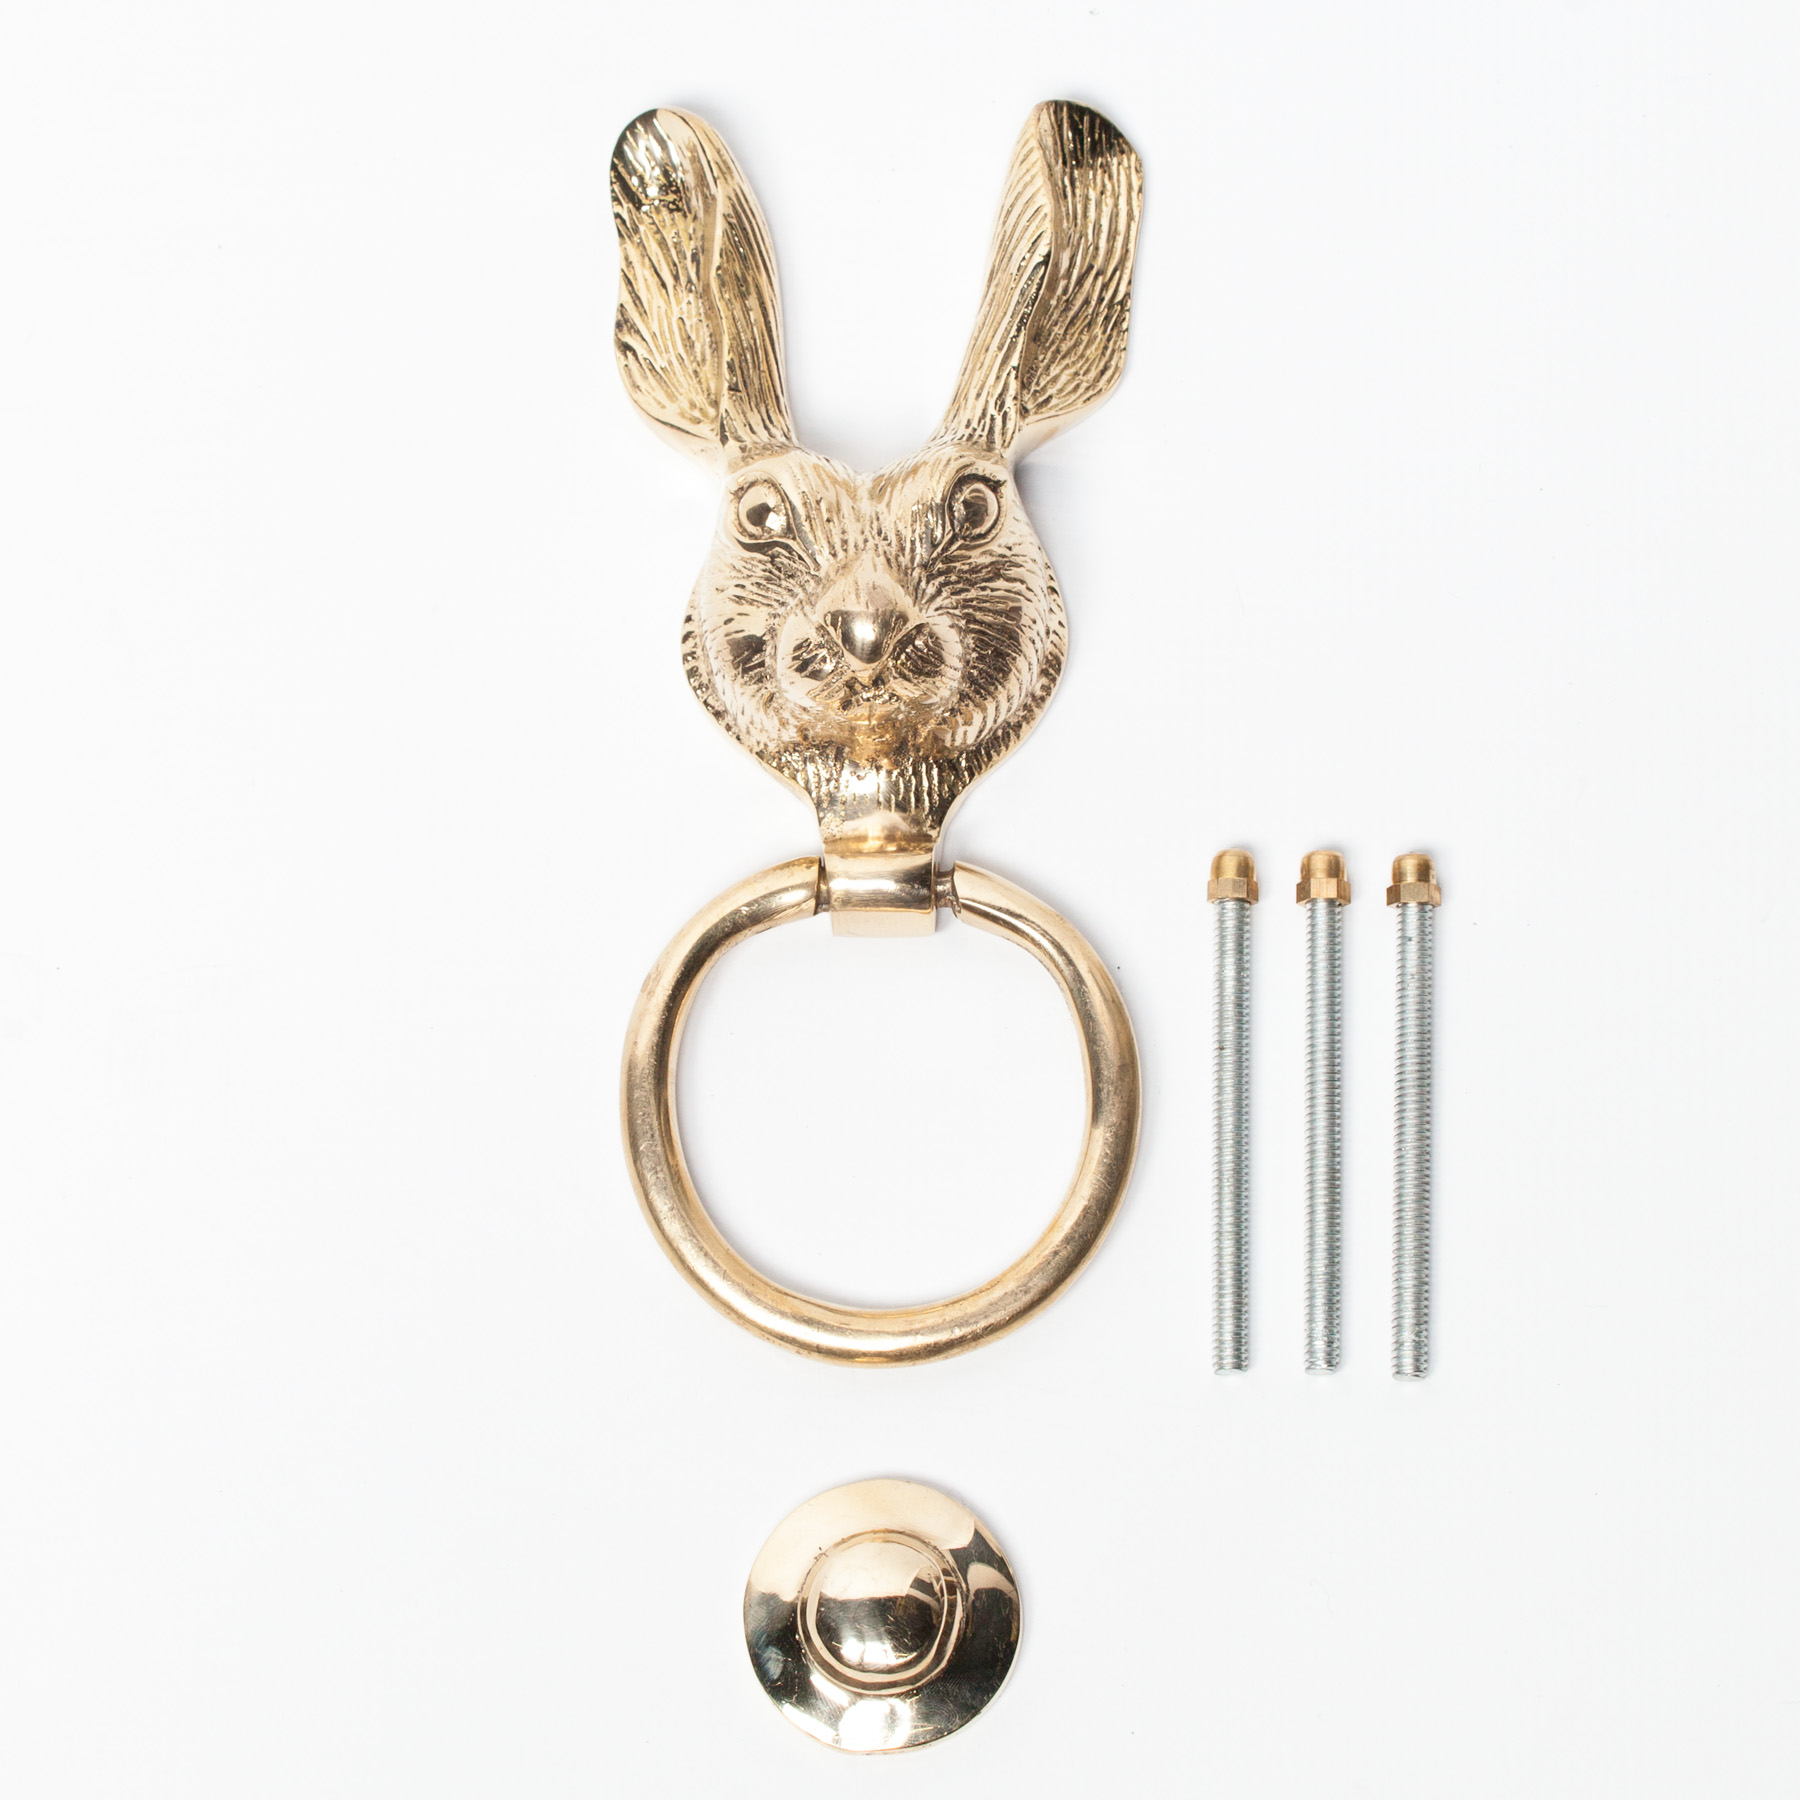 Brass Rabbit Door Knocker